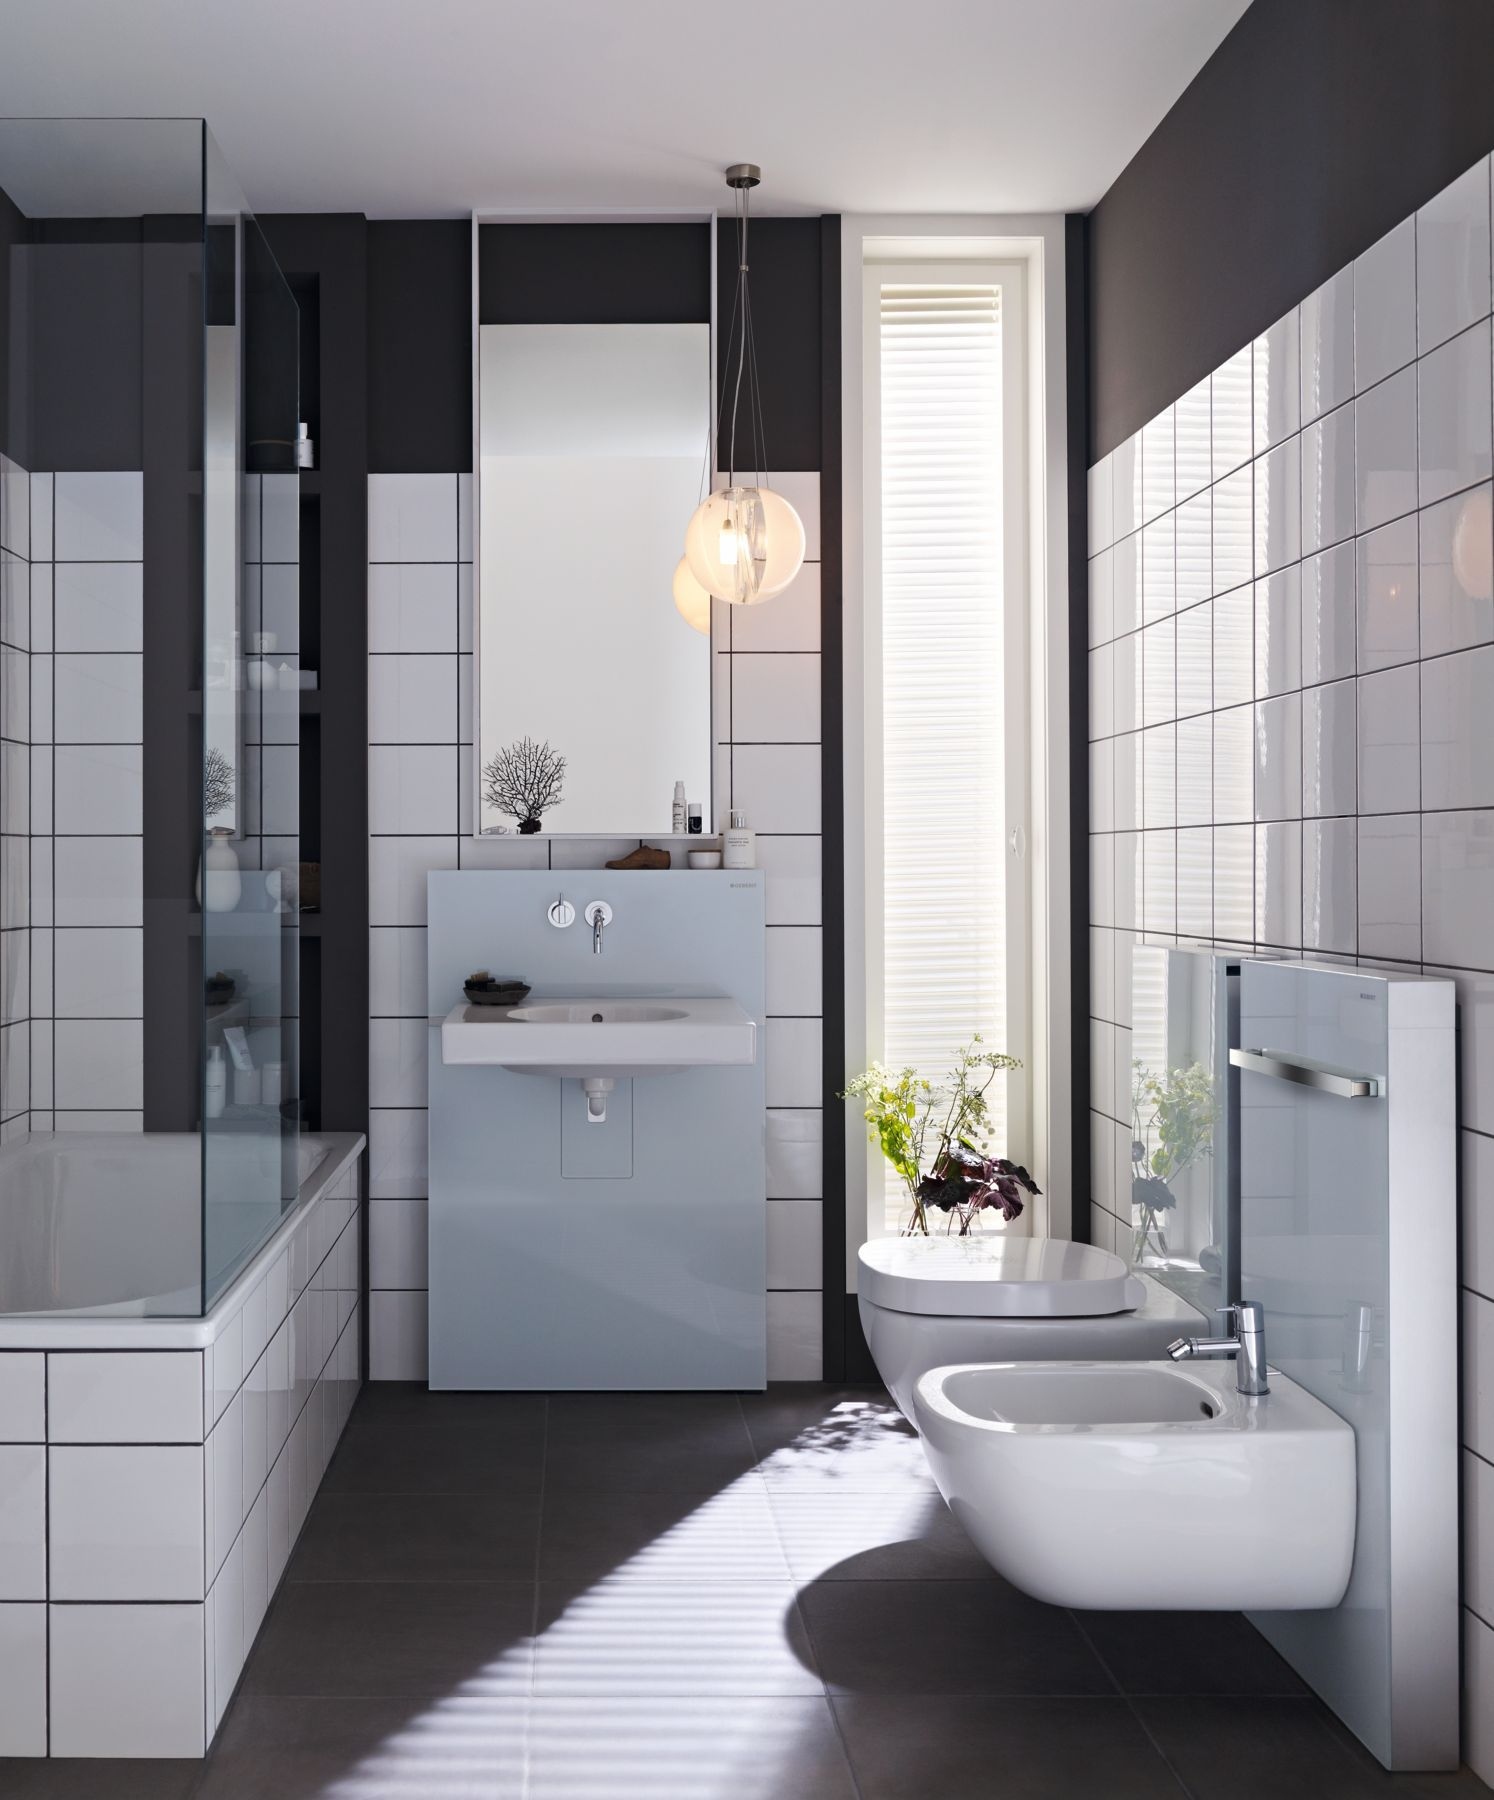 Badezimmer Renovation Bathroom Renovation With Geberit Sanitary Modules Monolith